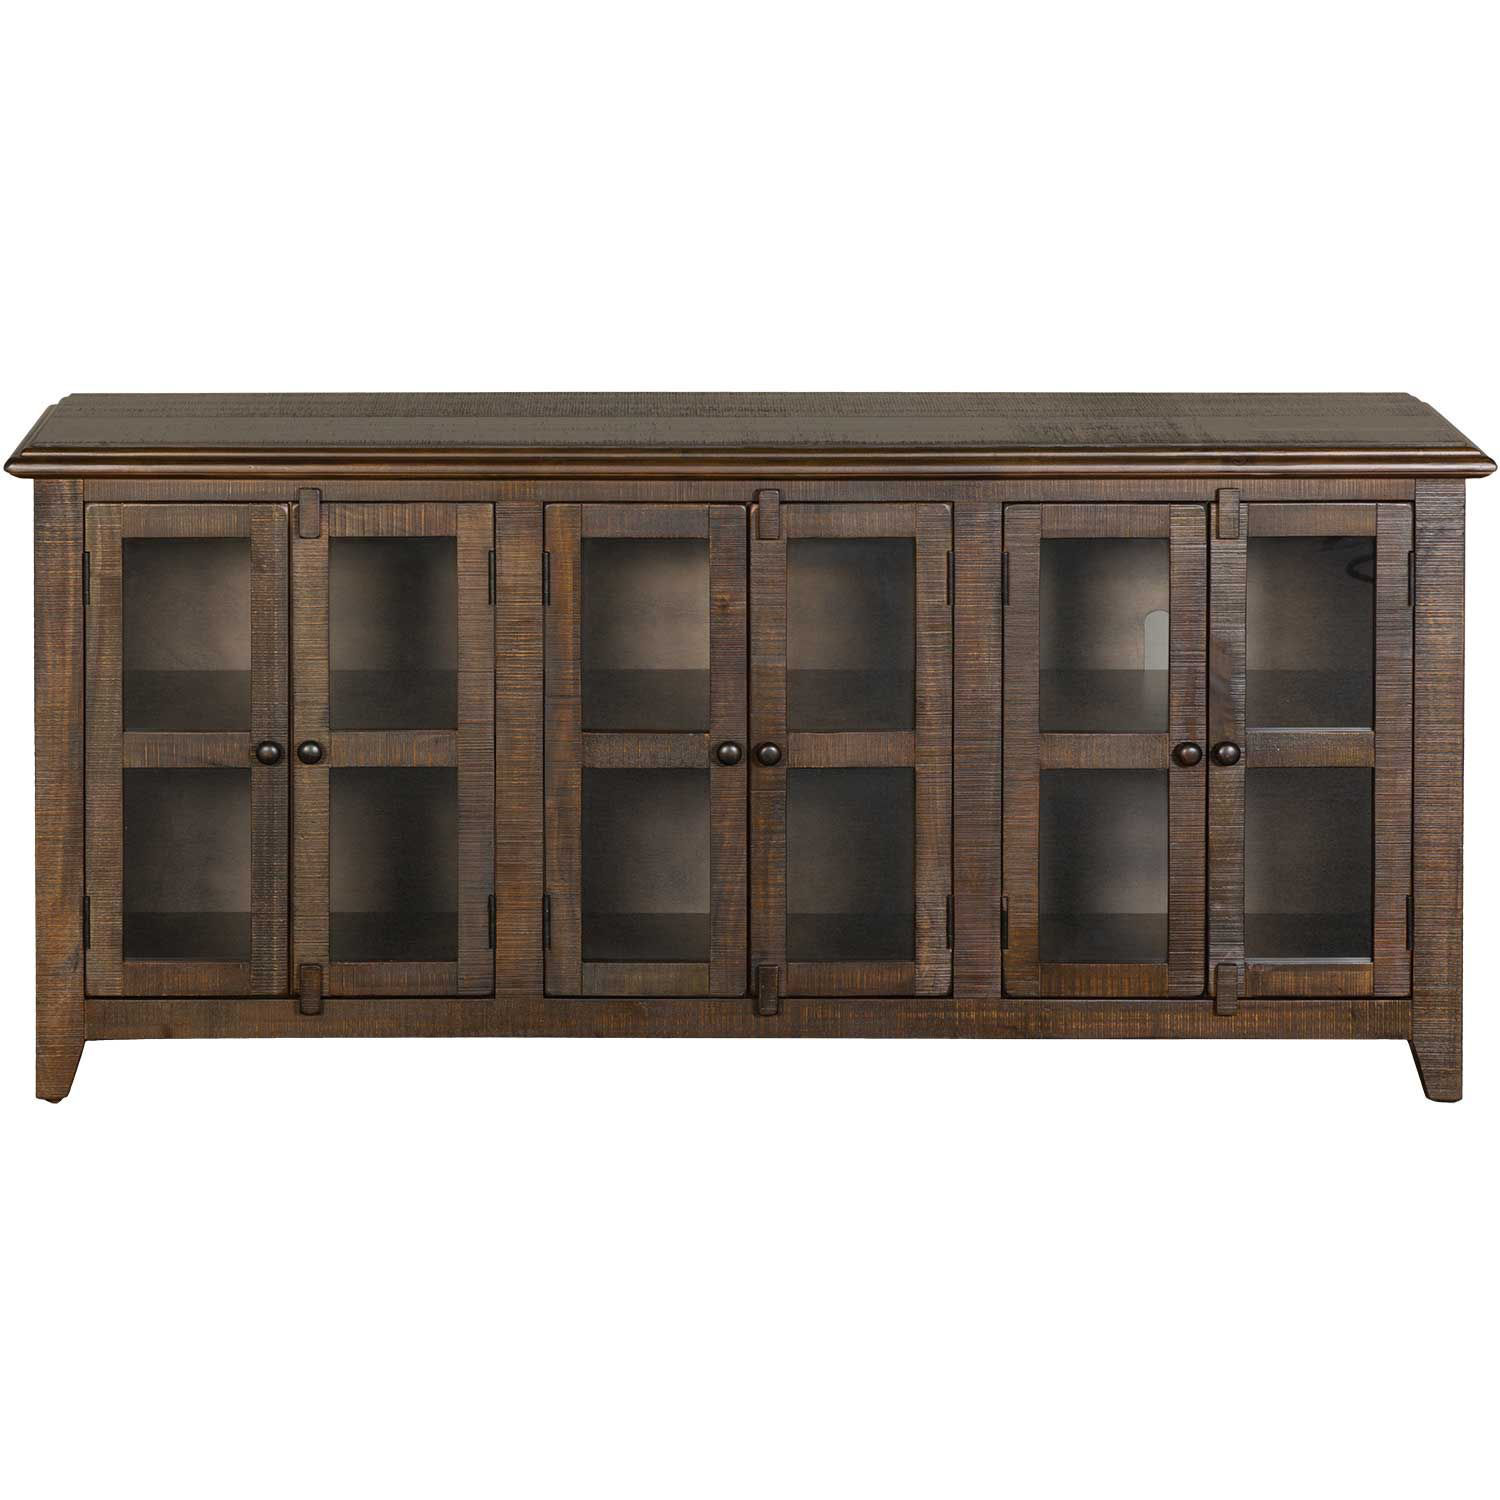 "Picture of Tobacco Leaf 70"" TV Stand"